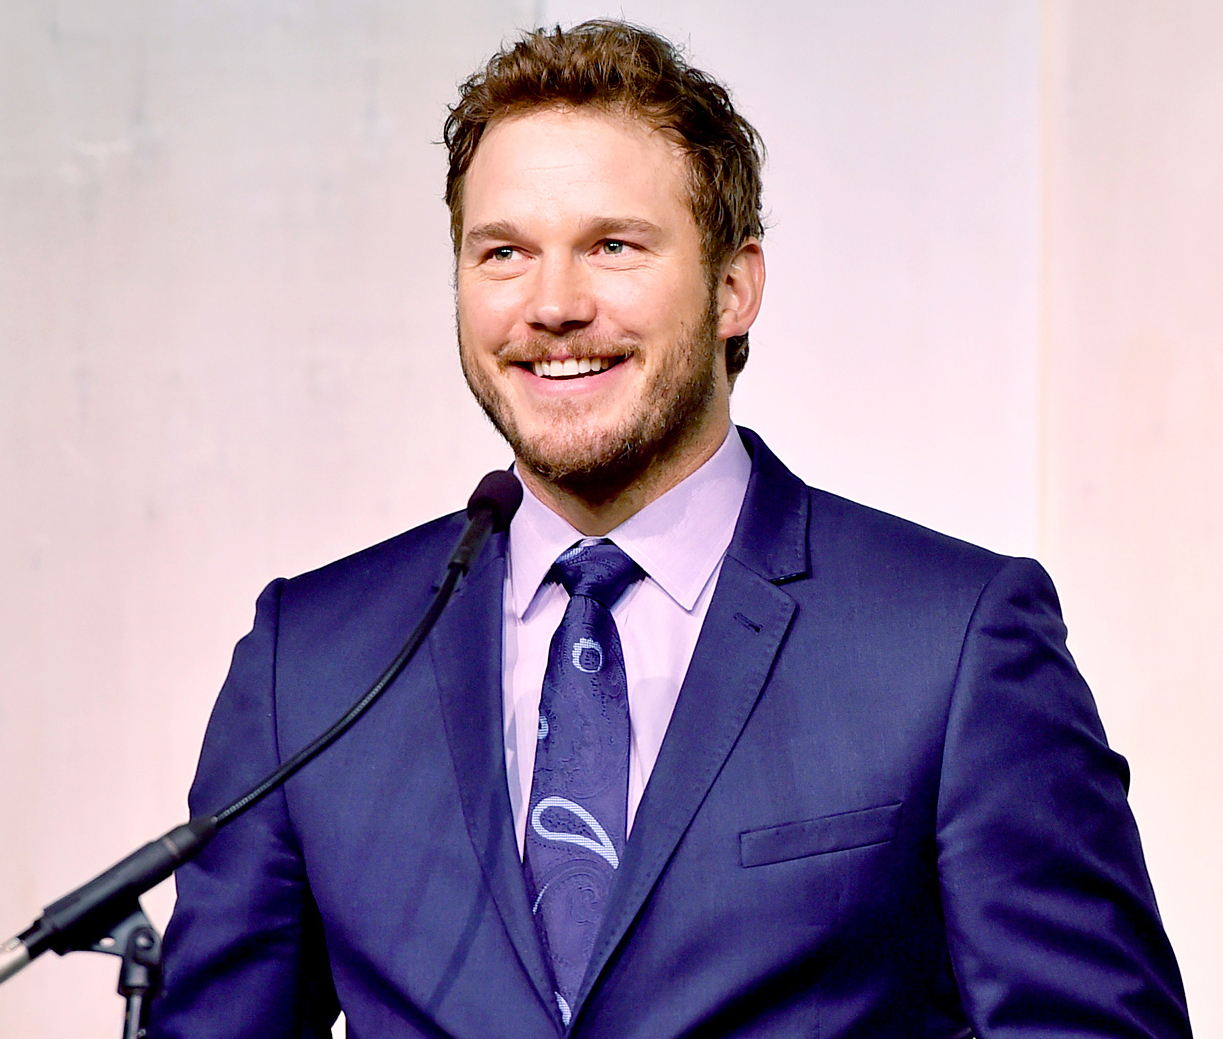 Chris-Pratt-Height-Weight-Age-Size-Affairs-Body-Stats